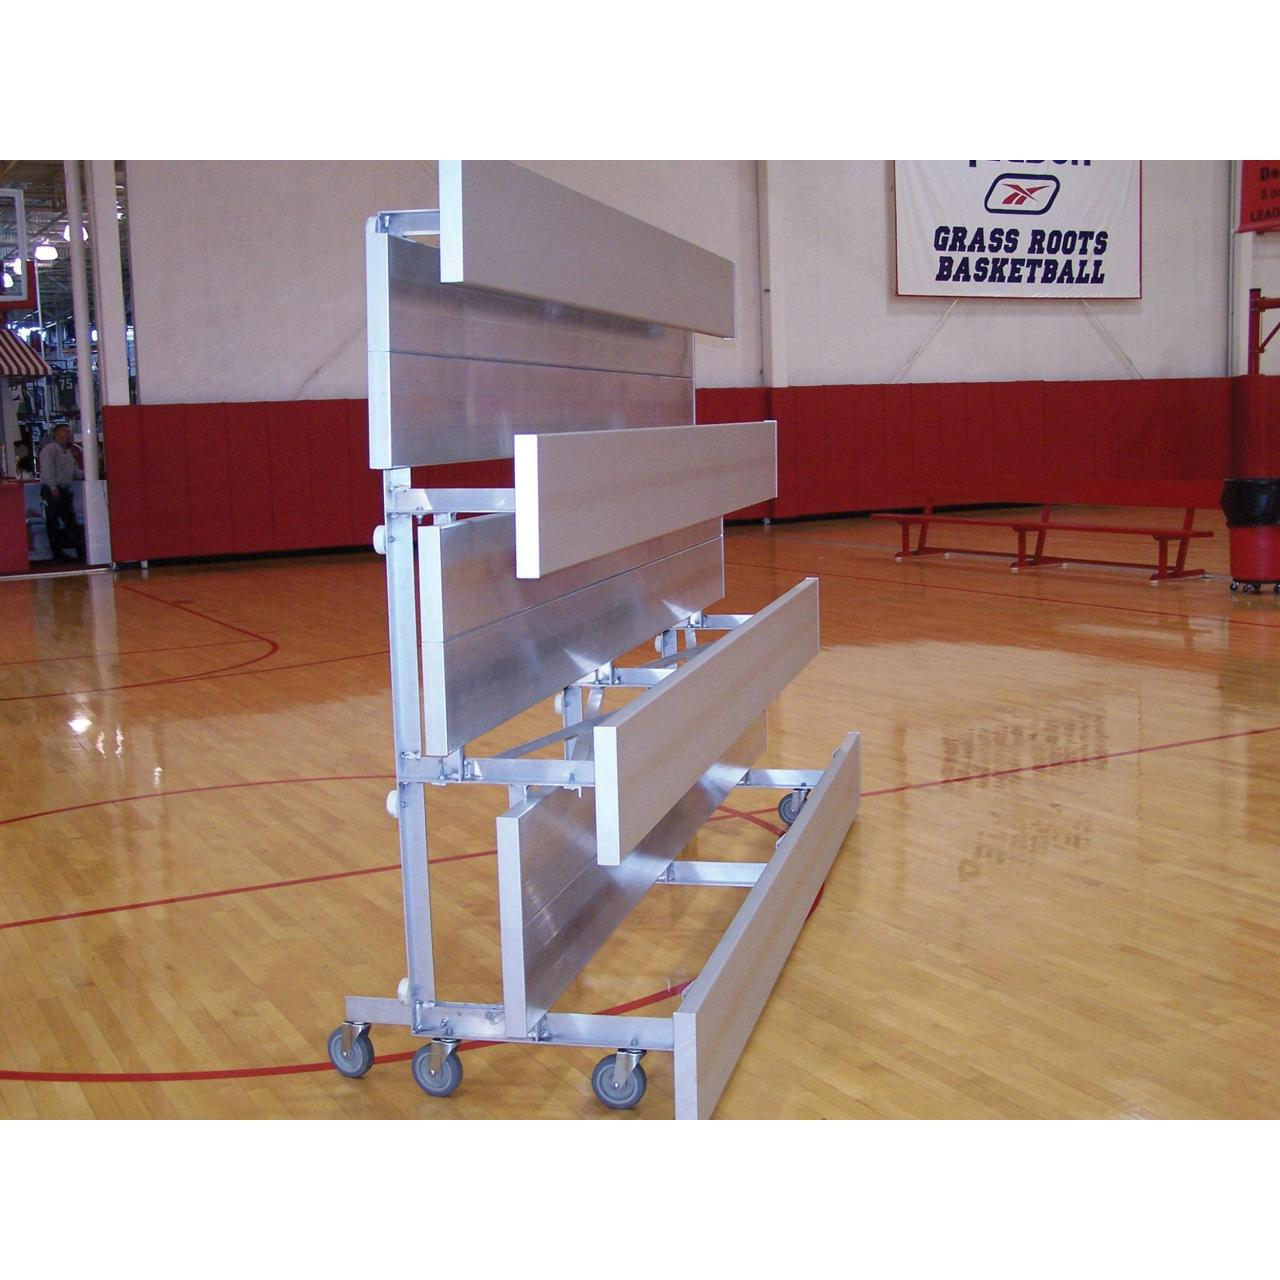 Buy cheap Baseball-Softball Tip-N-Roll Bleachers 2 Row 7.5' Tip-N-Roll Bleacher from wholesalers